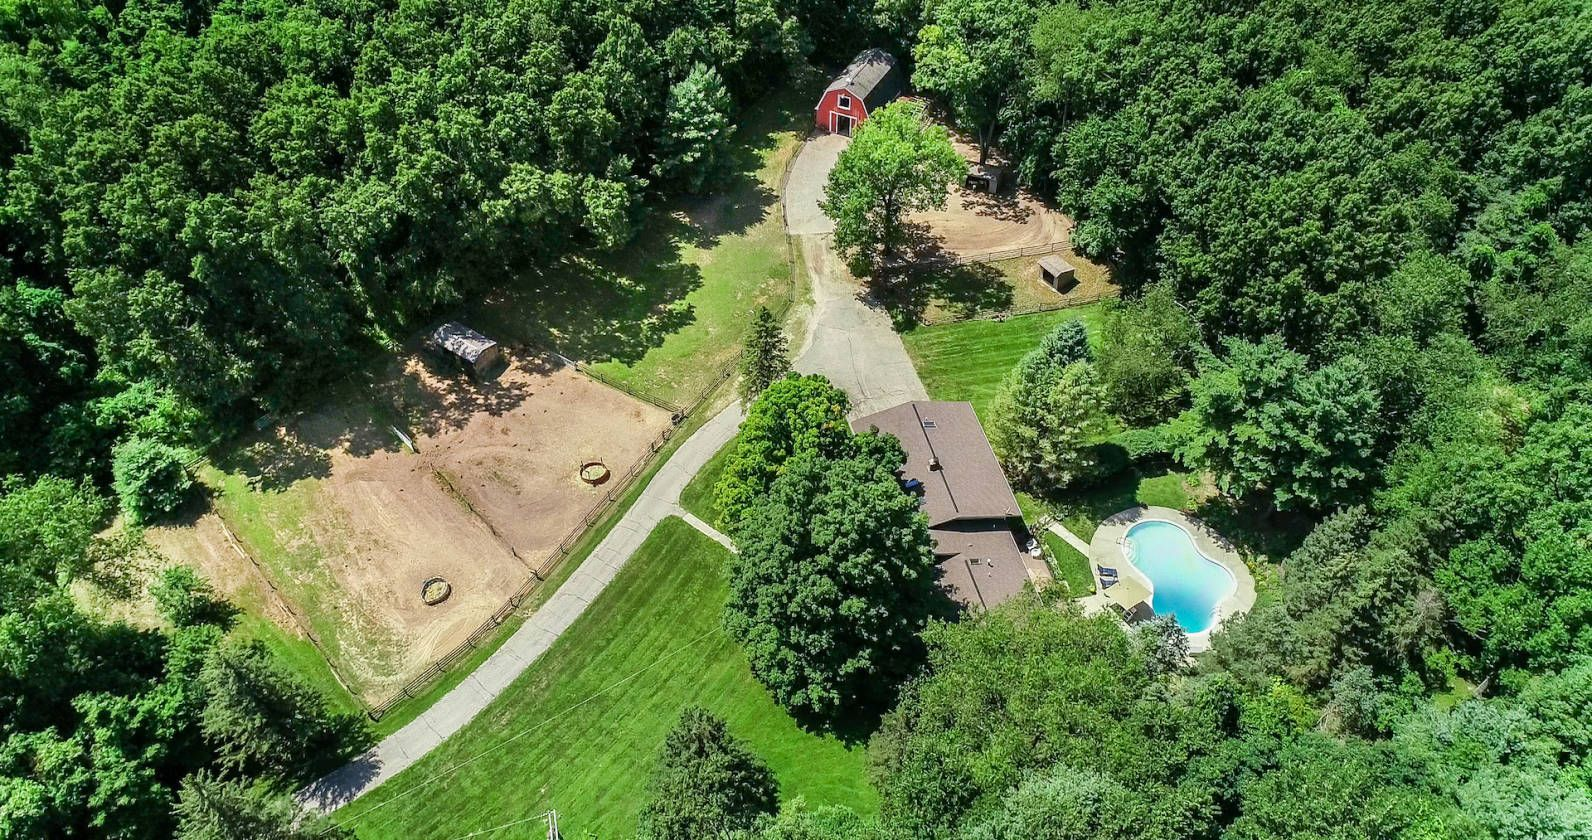 Horse Property For Sale In Oakland County Michigan Stunning 6